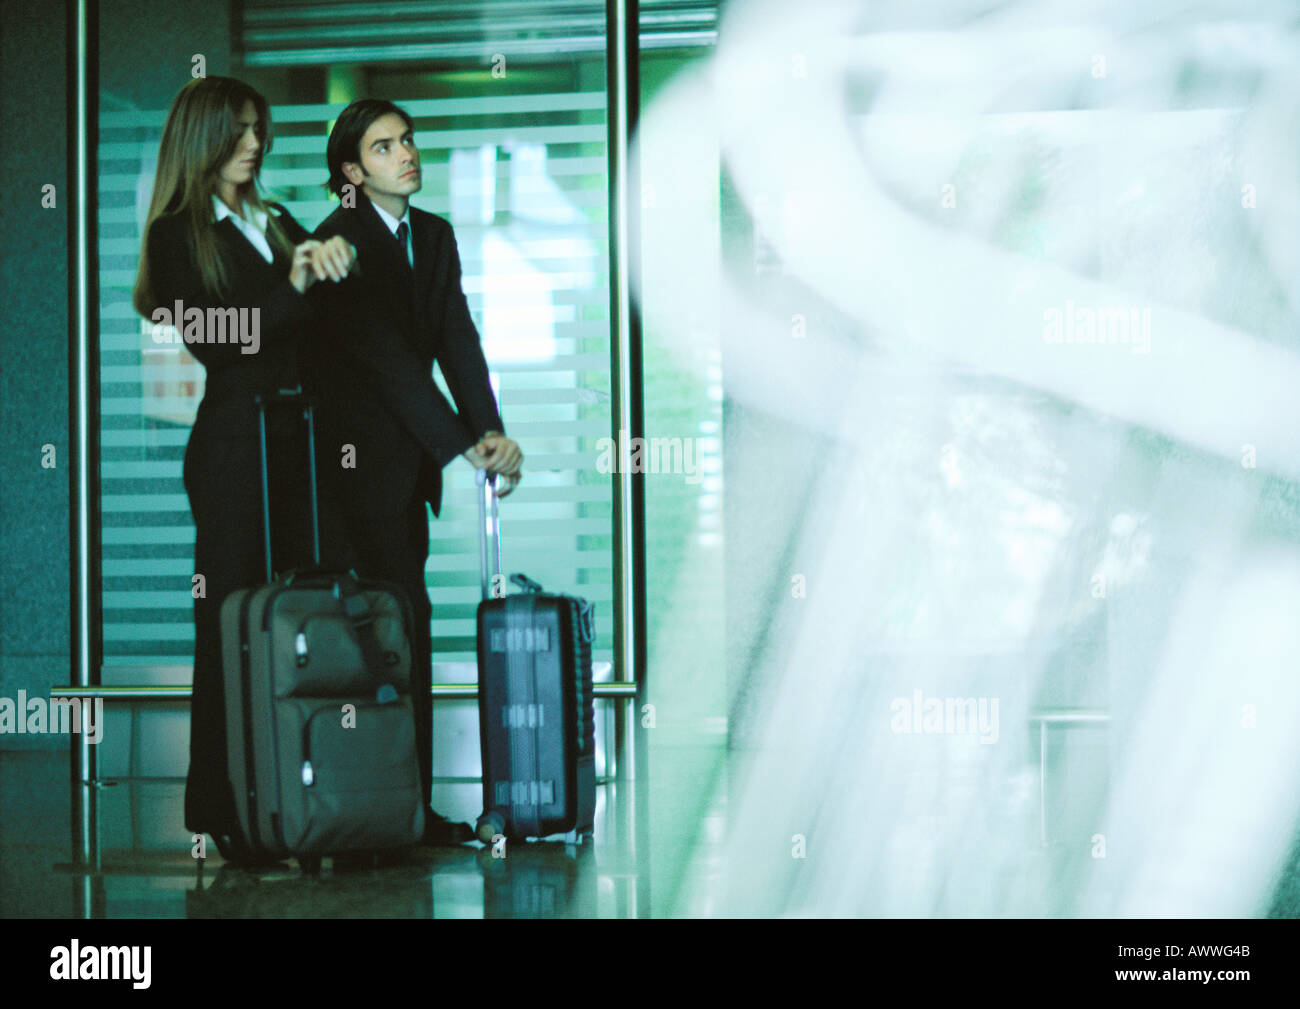 Man and woman standing with suitcases, woman looking at watch. - Stock Image